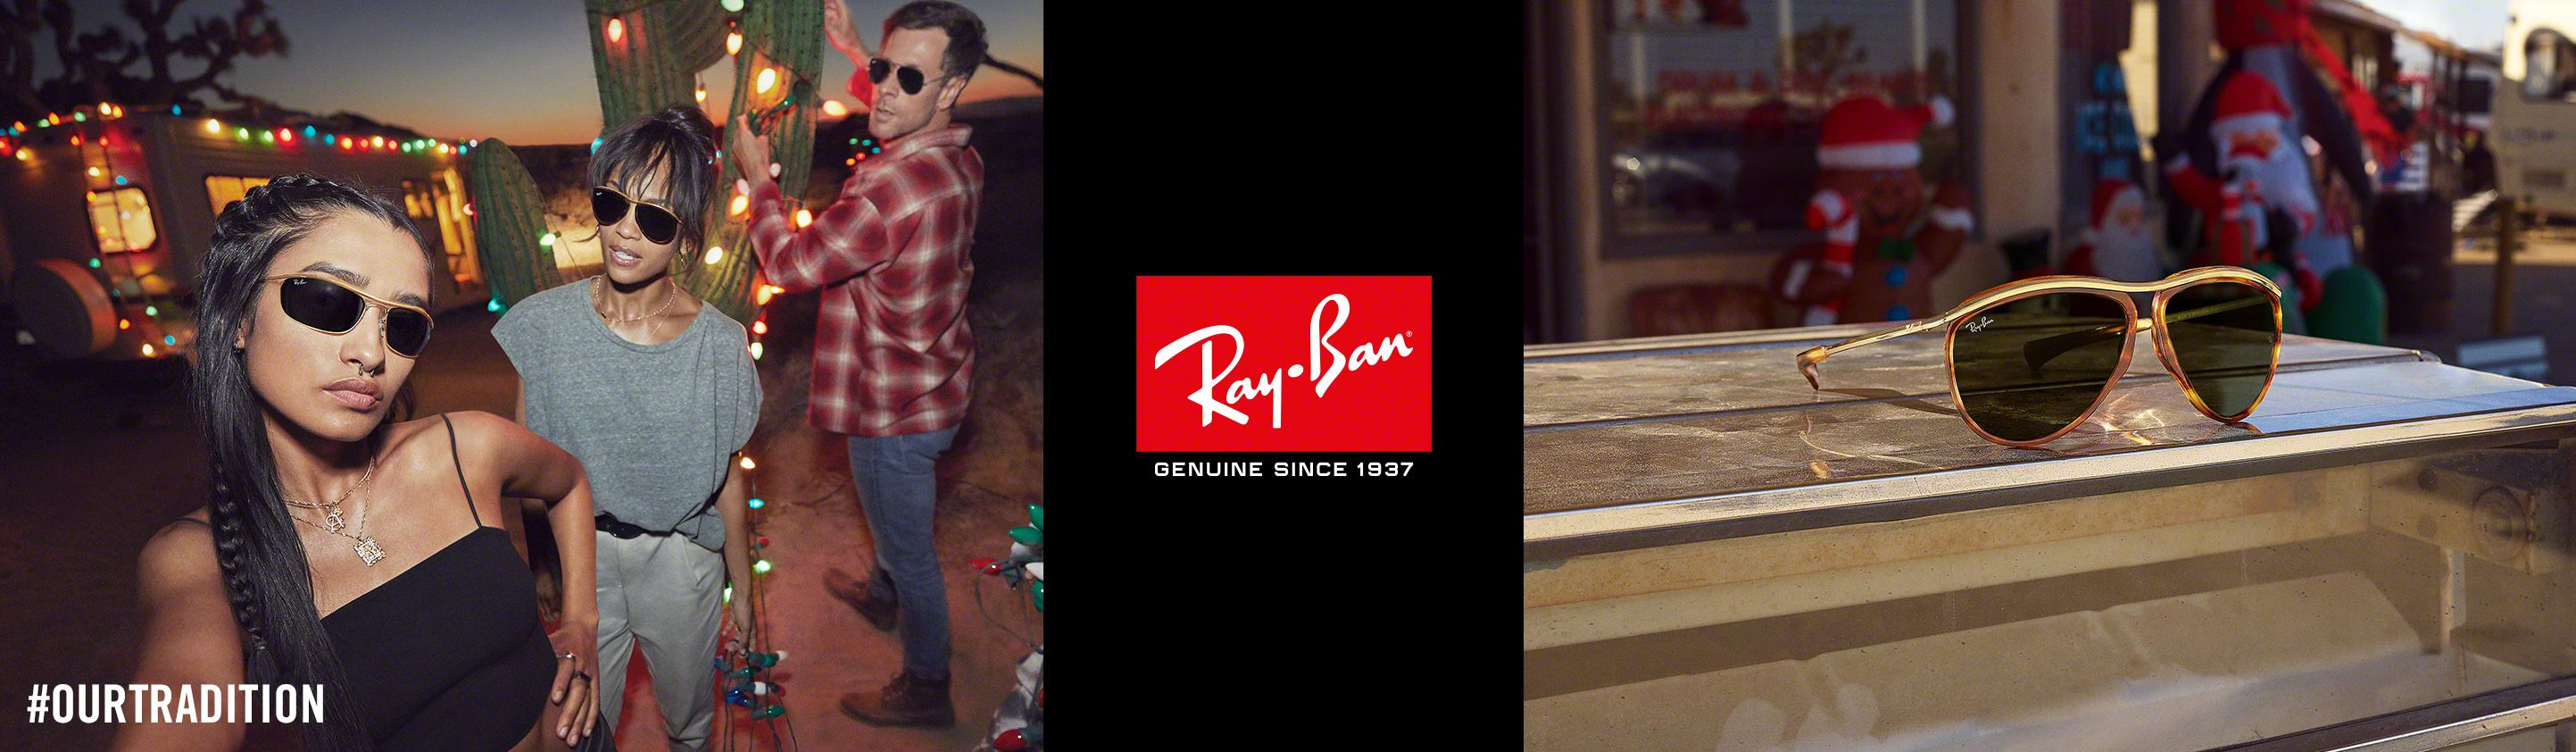 Ray-Ban. #OURTRADITION